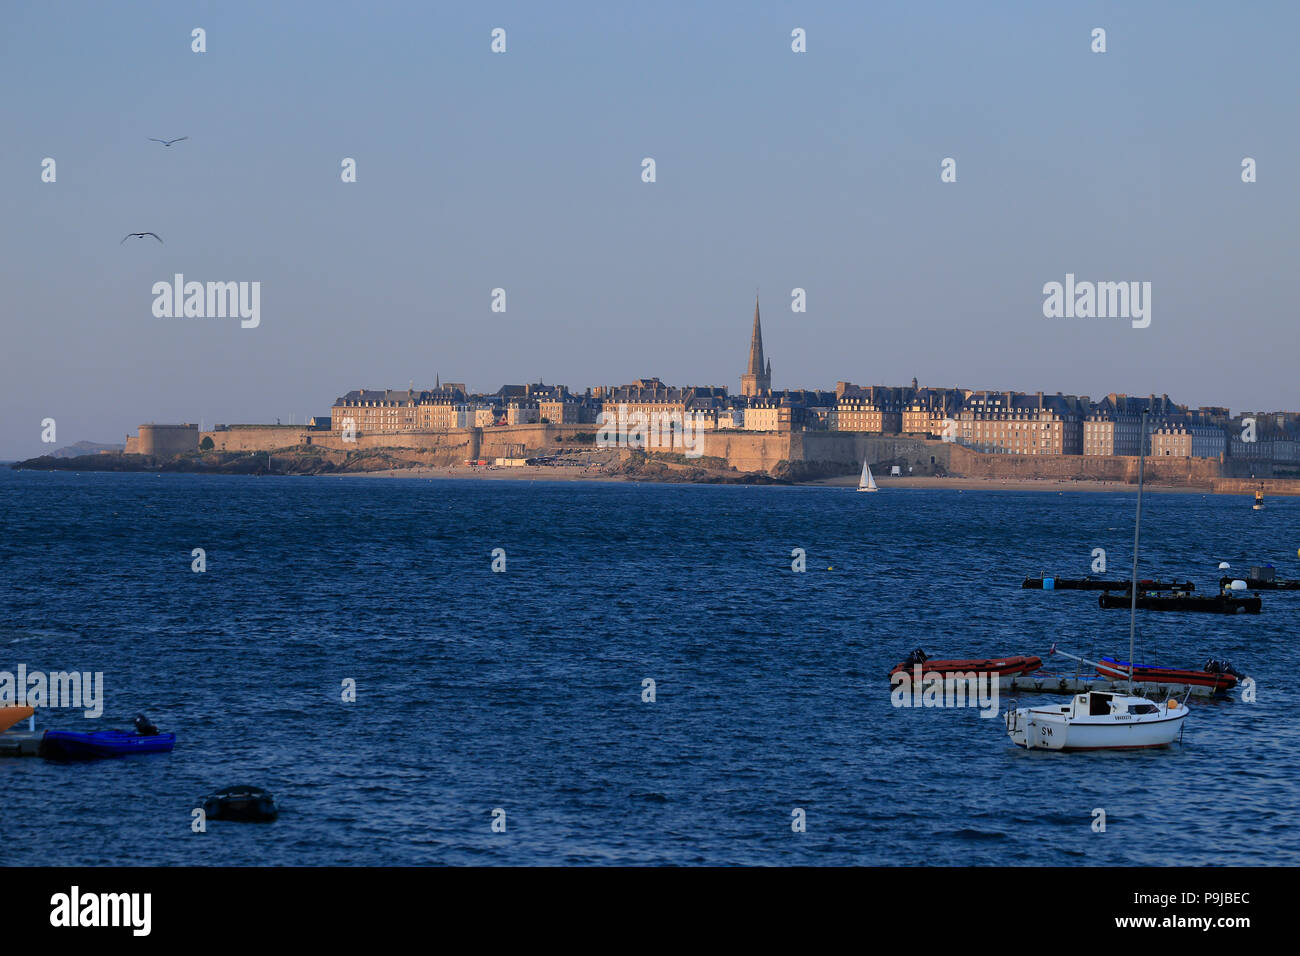 Town of St. Malo viewed across the bay from Dinard in northern Brittany. - Stock Image